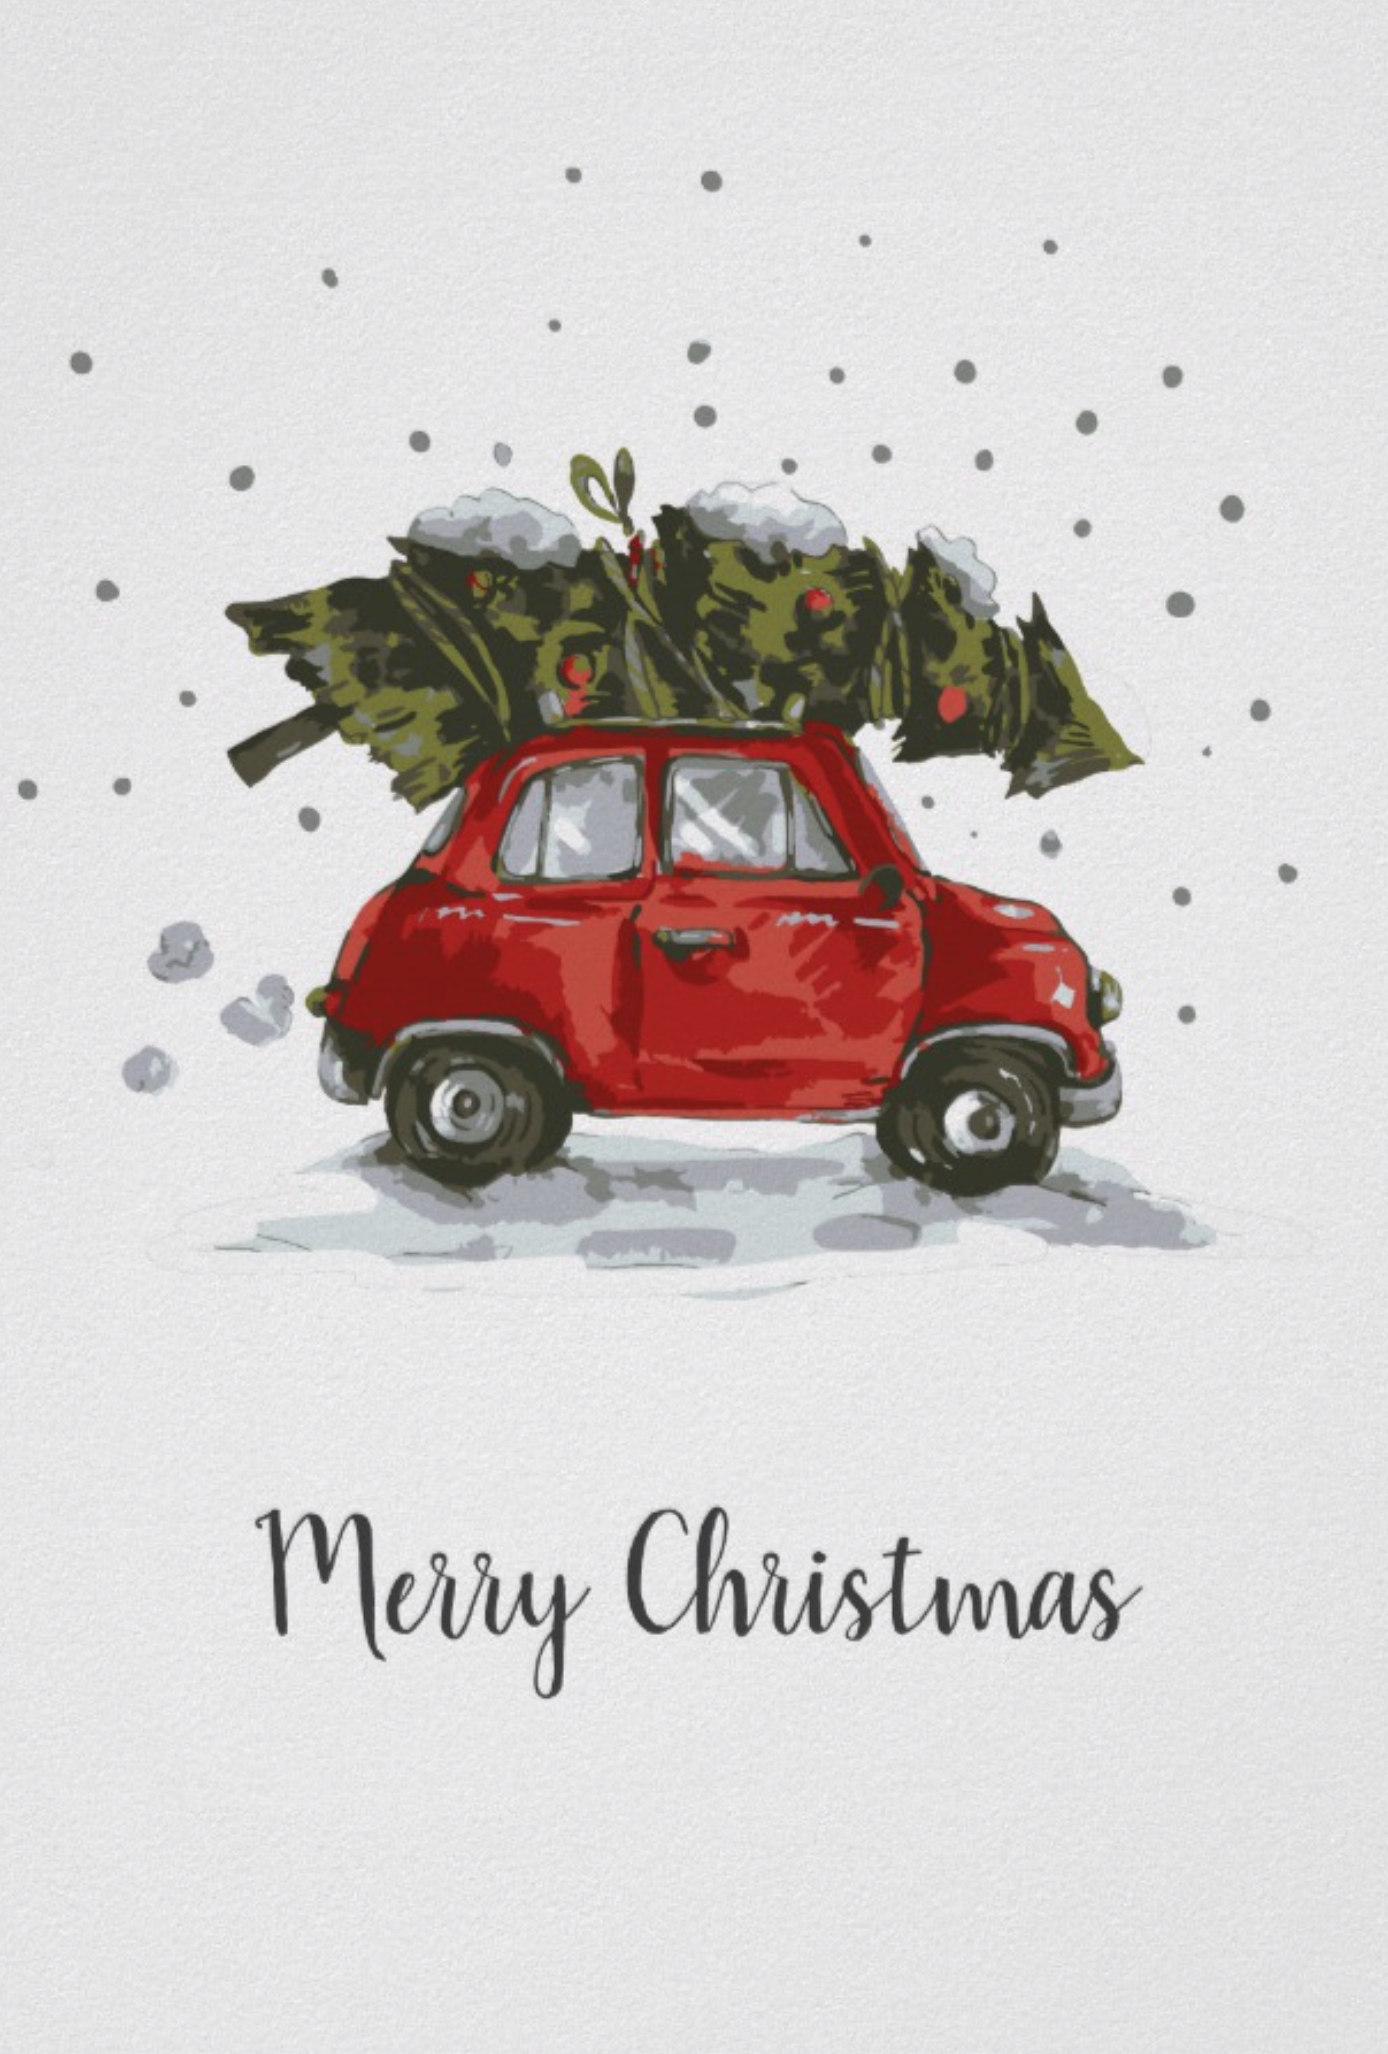 Retro Car Christmas Tree Poster Christmas by JunkyDotCom - Cute funny little red vintage car with a Christmas pine tree on the roof driving homethrough the snow